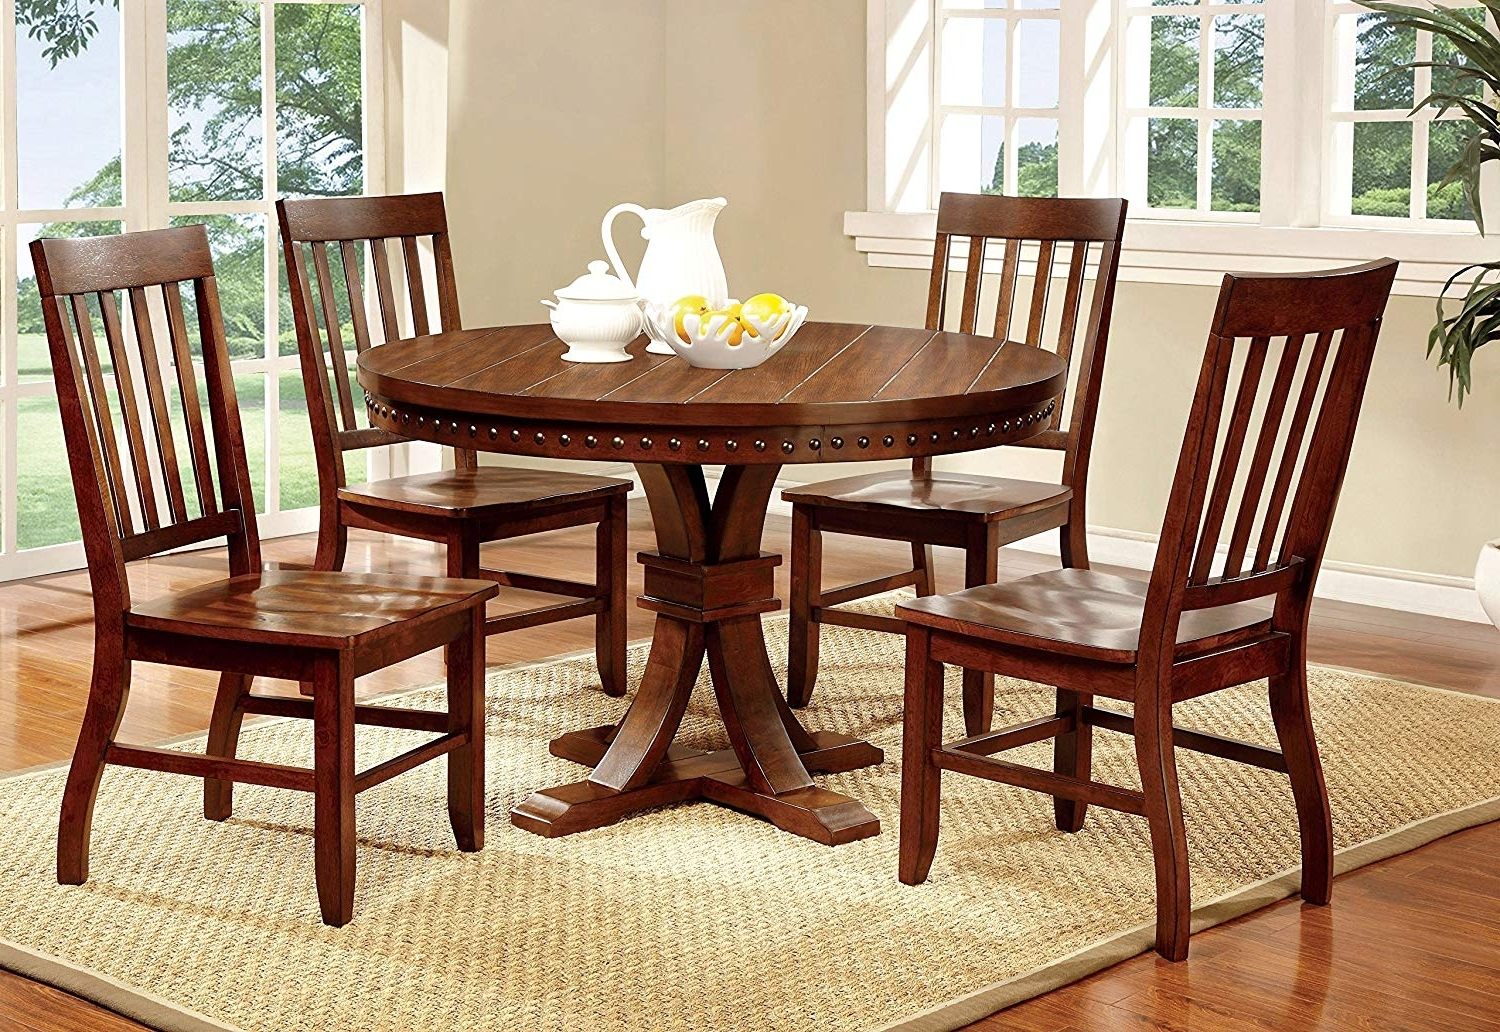 Well Liked Amazon – Furniture Of America Castile 5 Piece Transitional Round In Market 5 Piece Counter Sets (View 25 of 25)